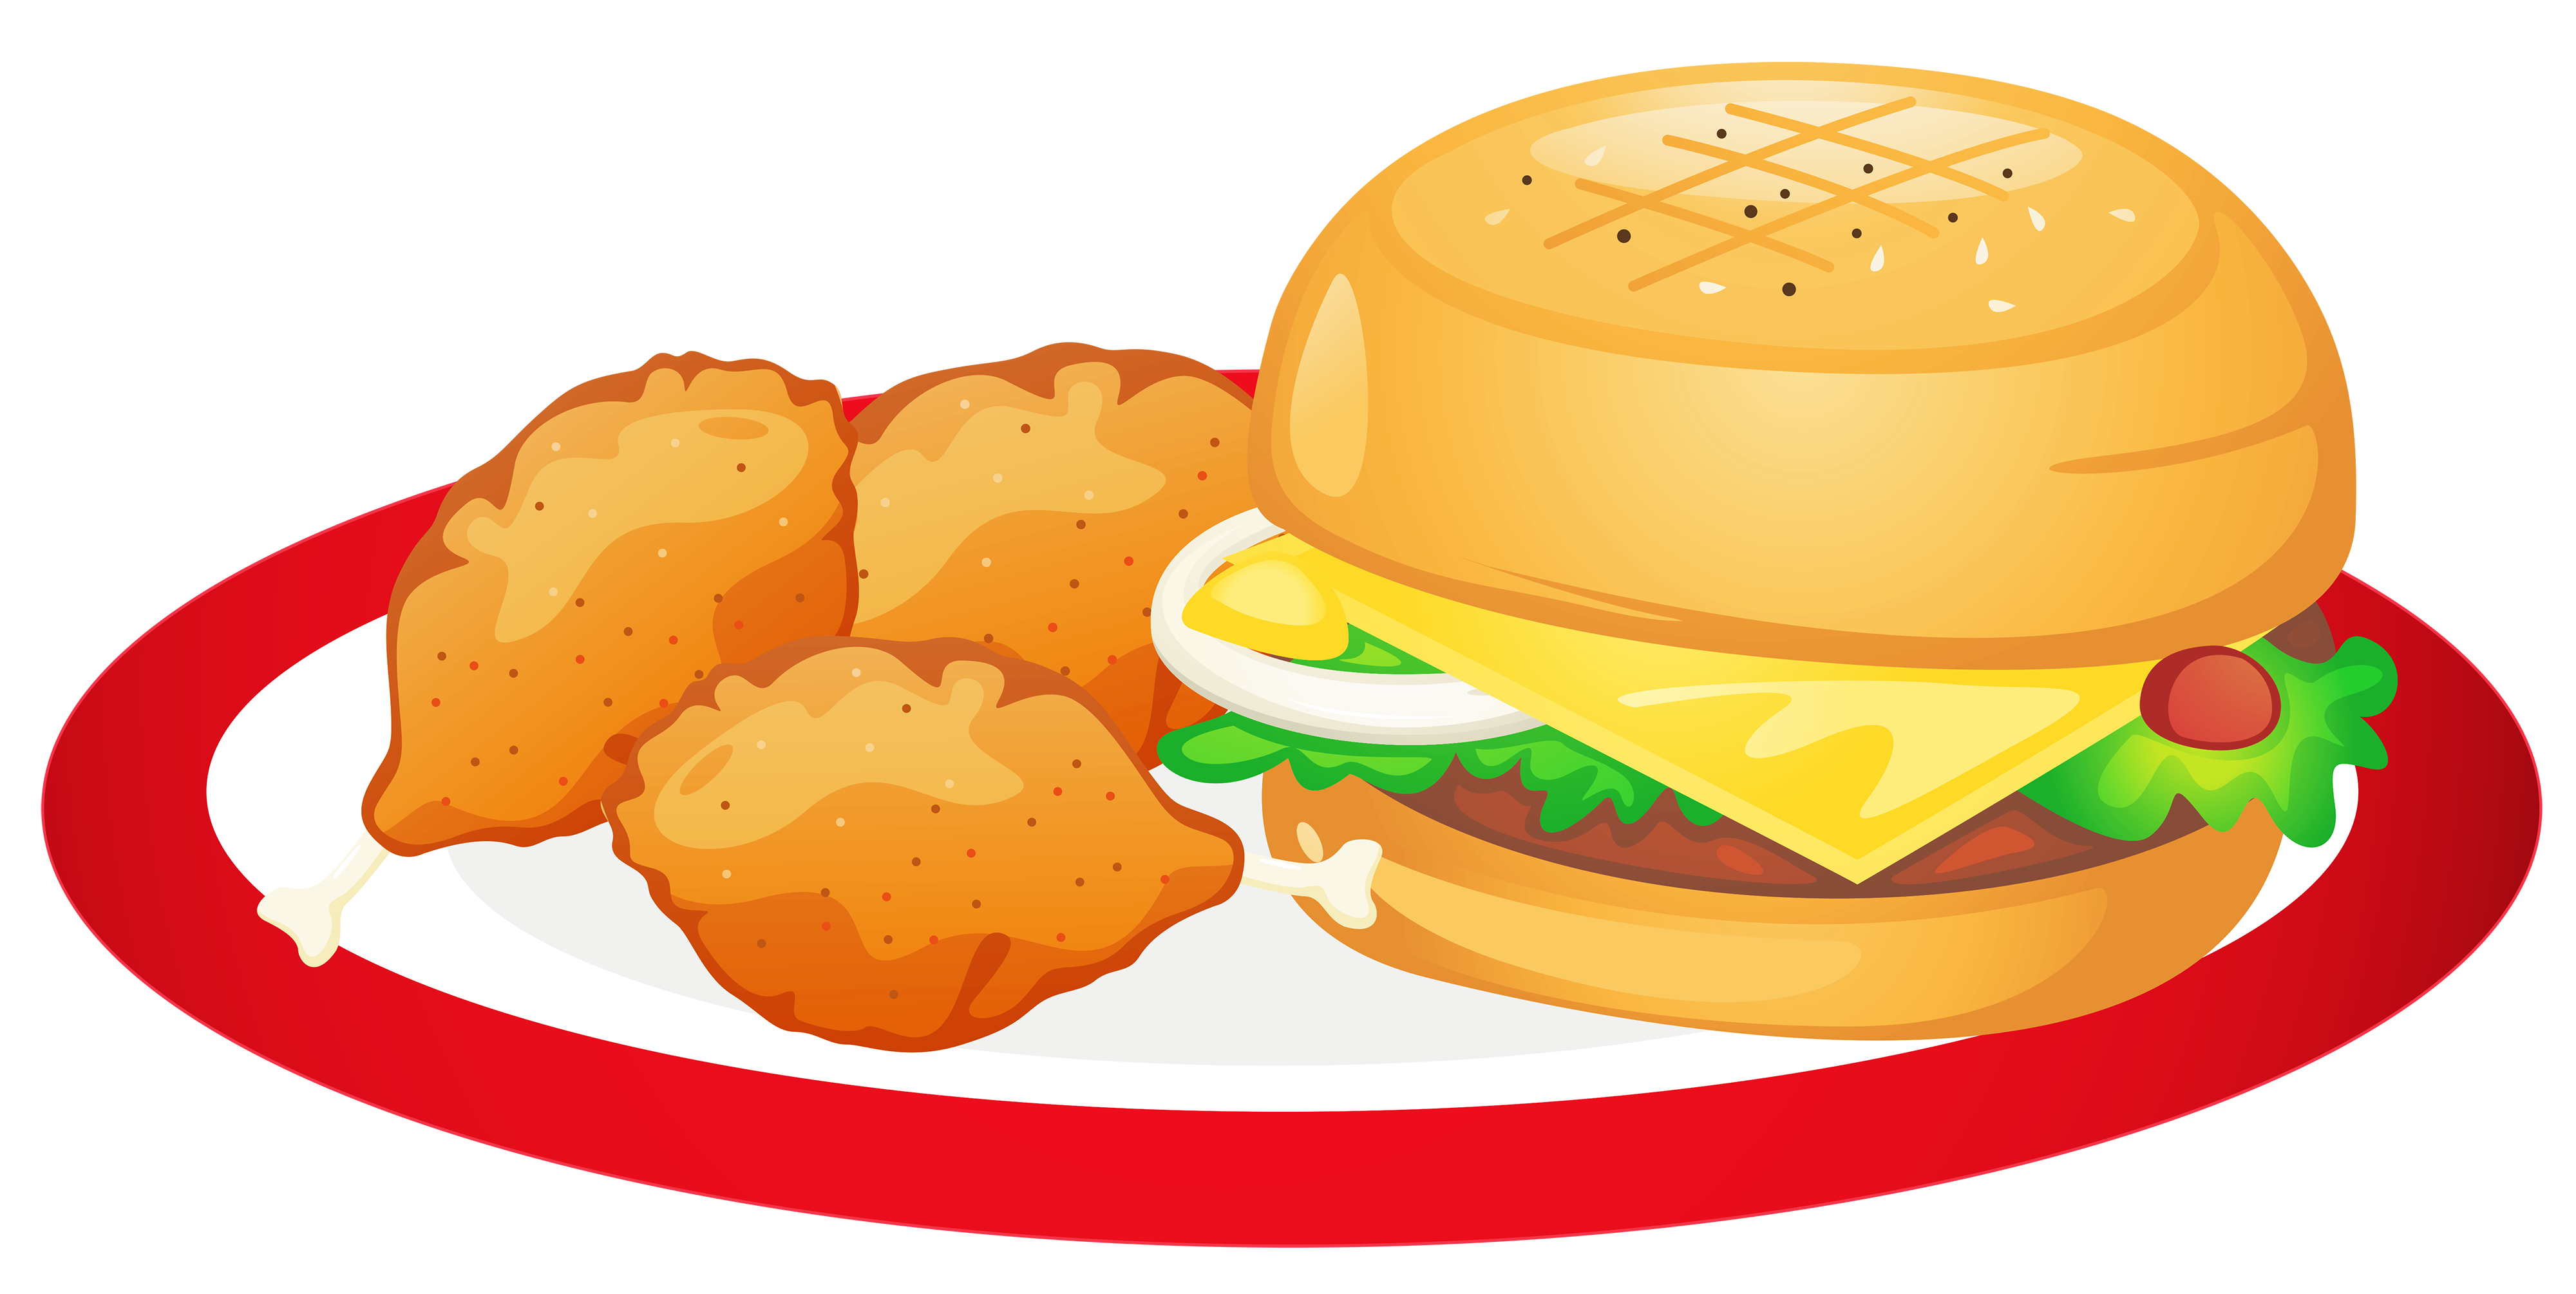 Food plate clipart png Food Plate Clipart | Free download best Food Plate Clipart on ... png